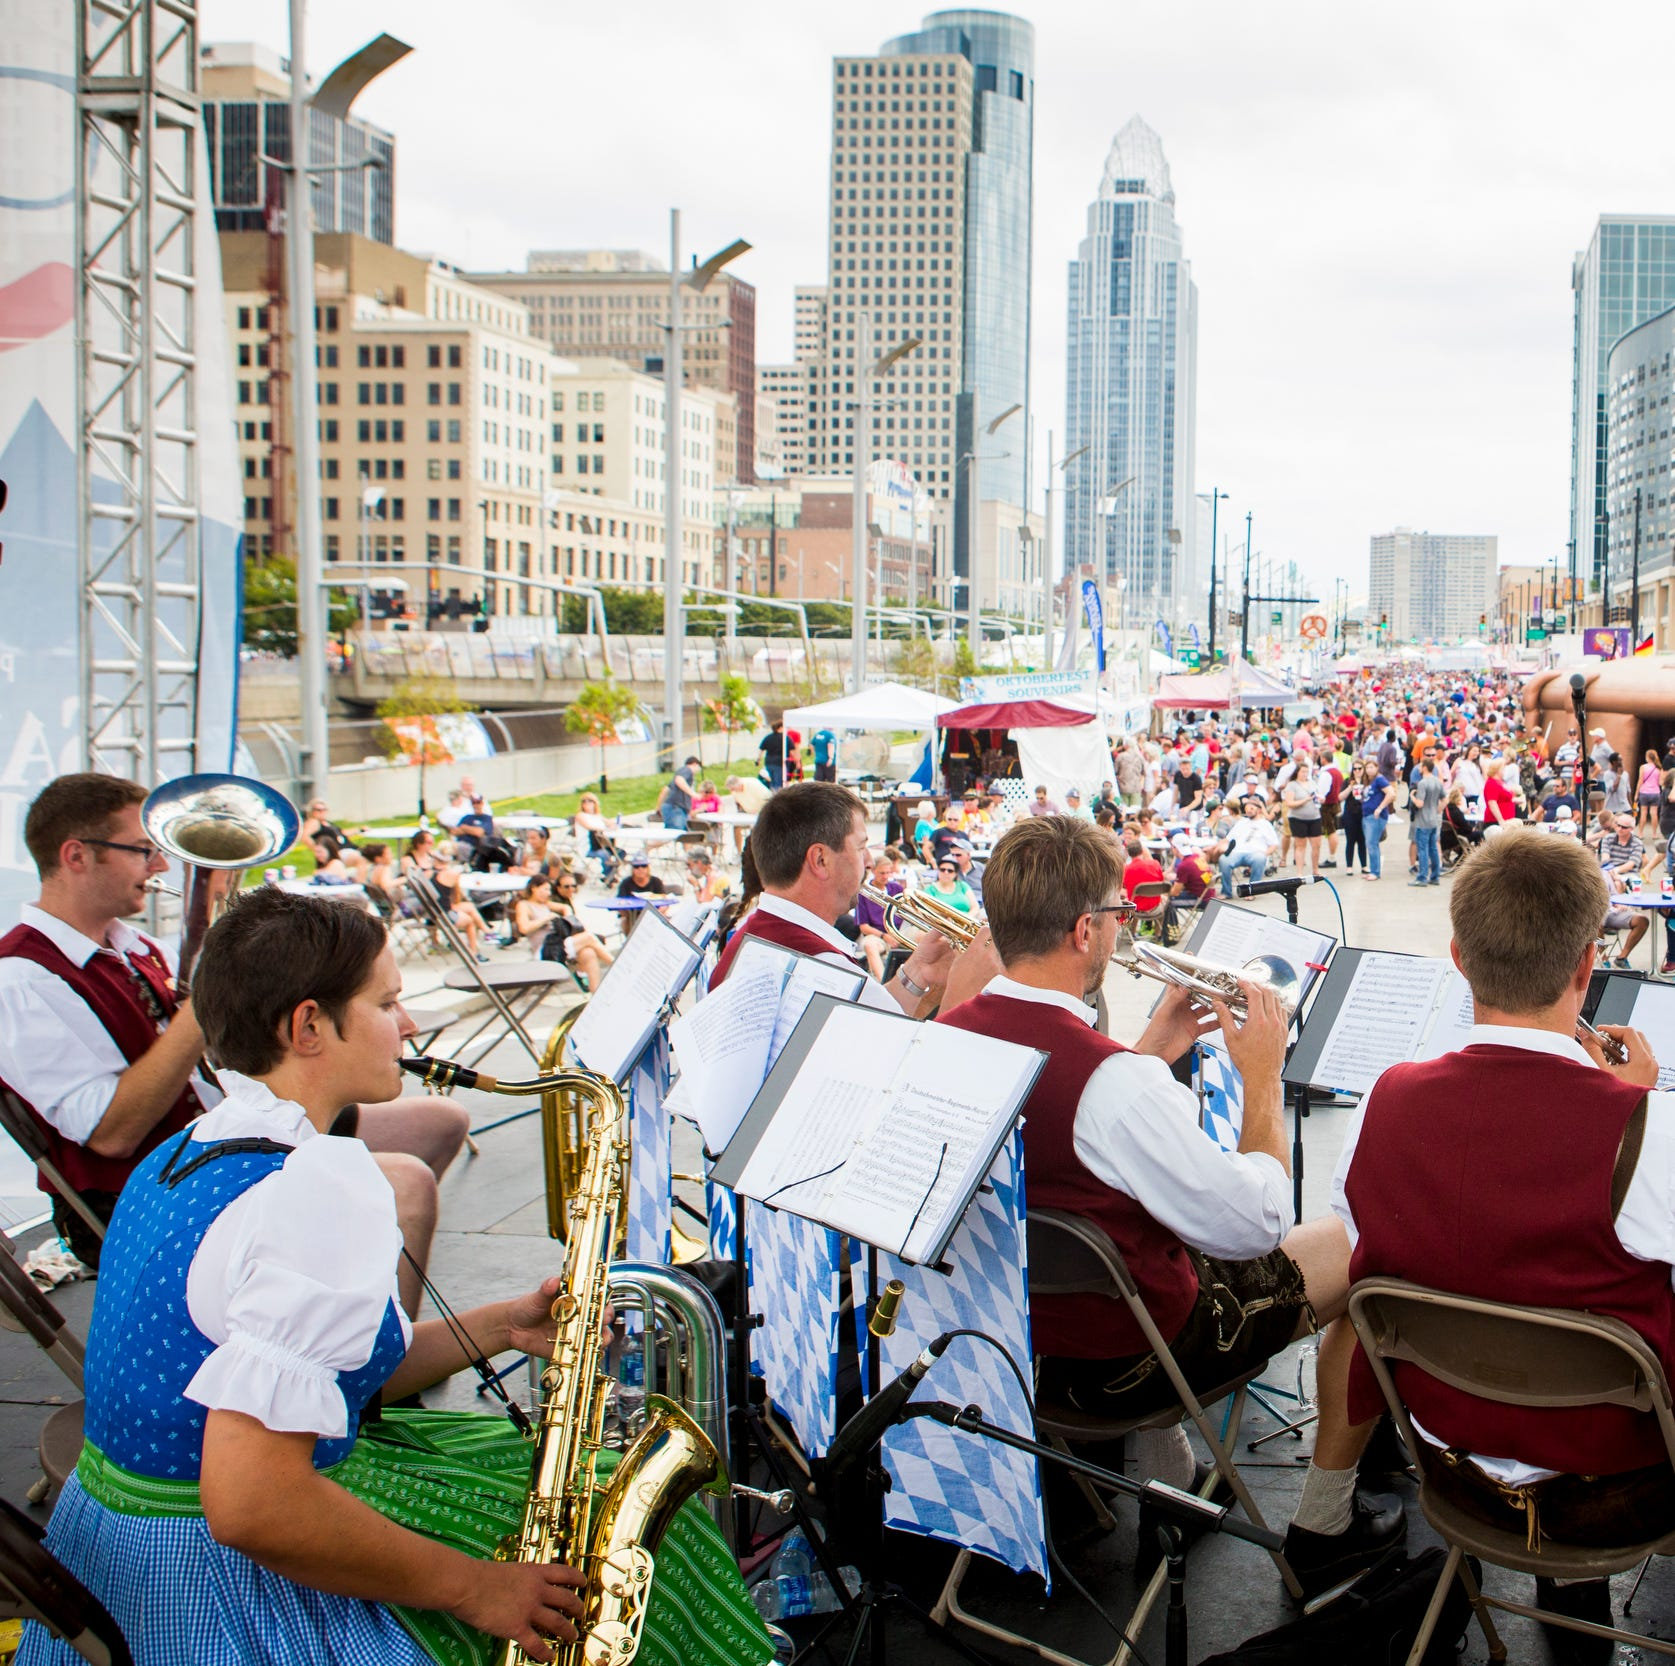 Cincinnati weather: Will it rain on Oktoberfest, Friday night football?